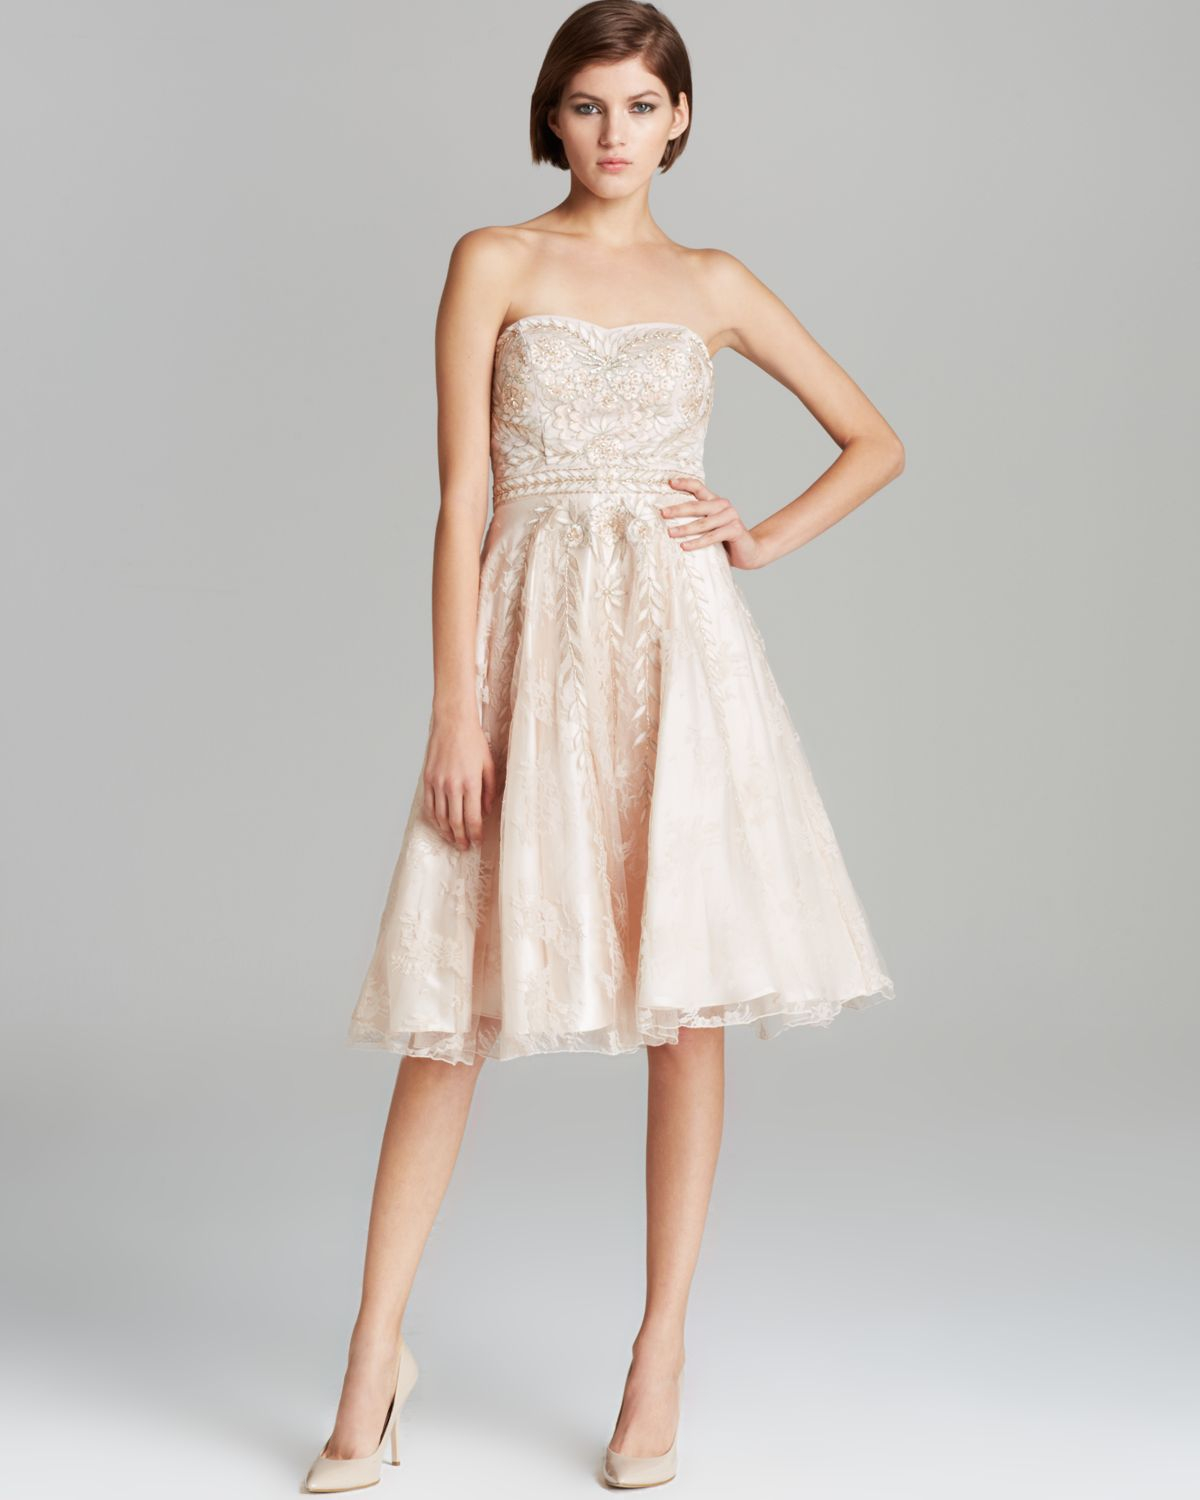 Sue wong Dress Strapless Embellished in Pink  Lyst